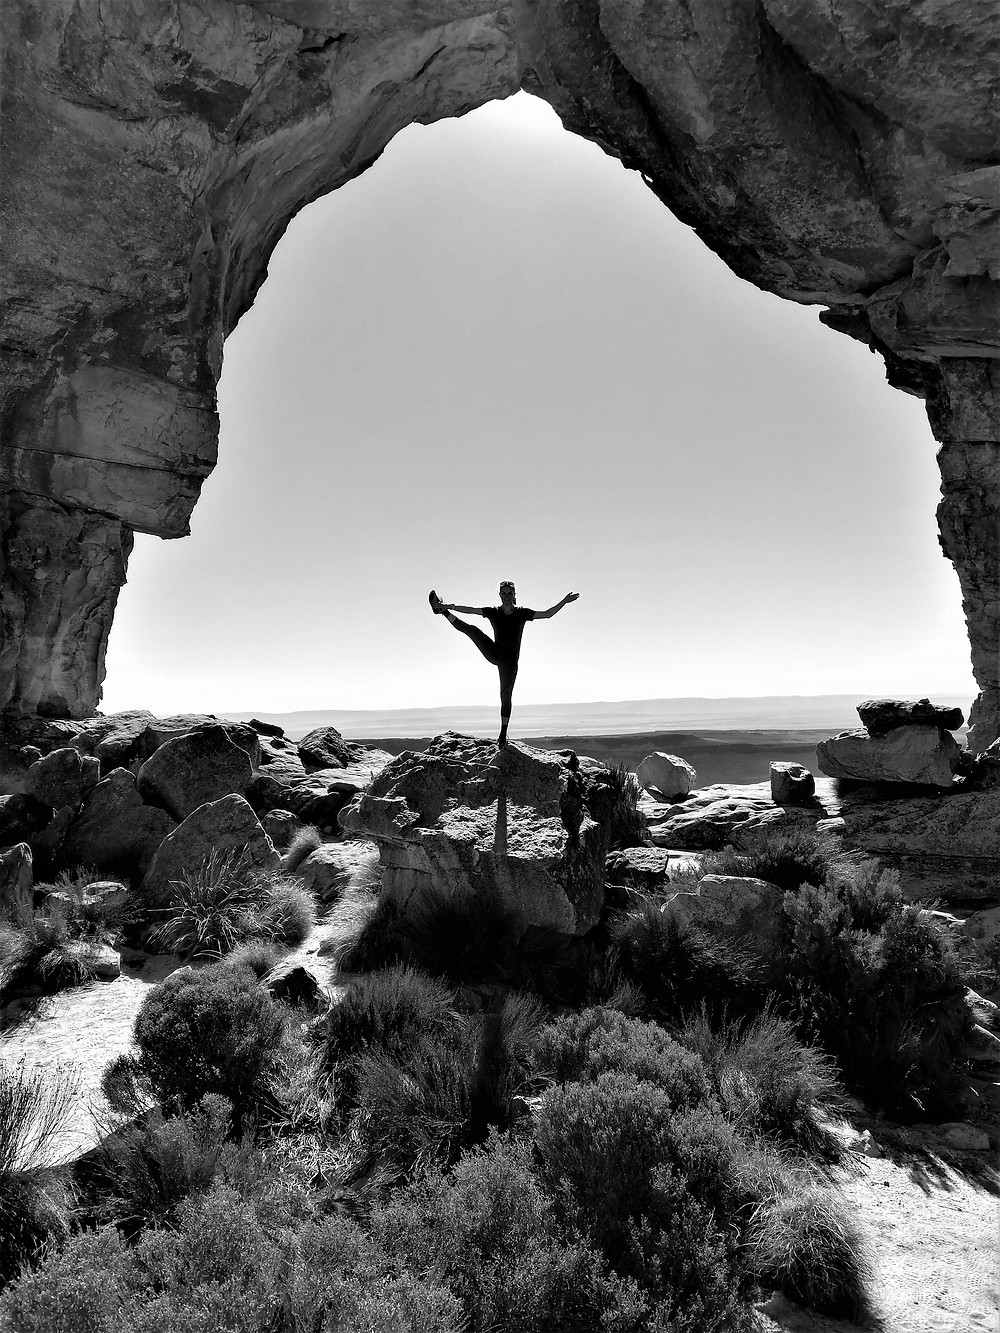 A woman posing with one leg held in the air, under an arched rock formation